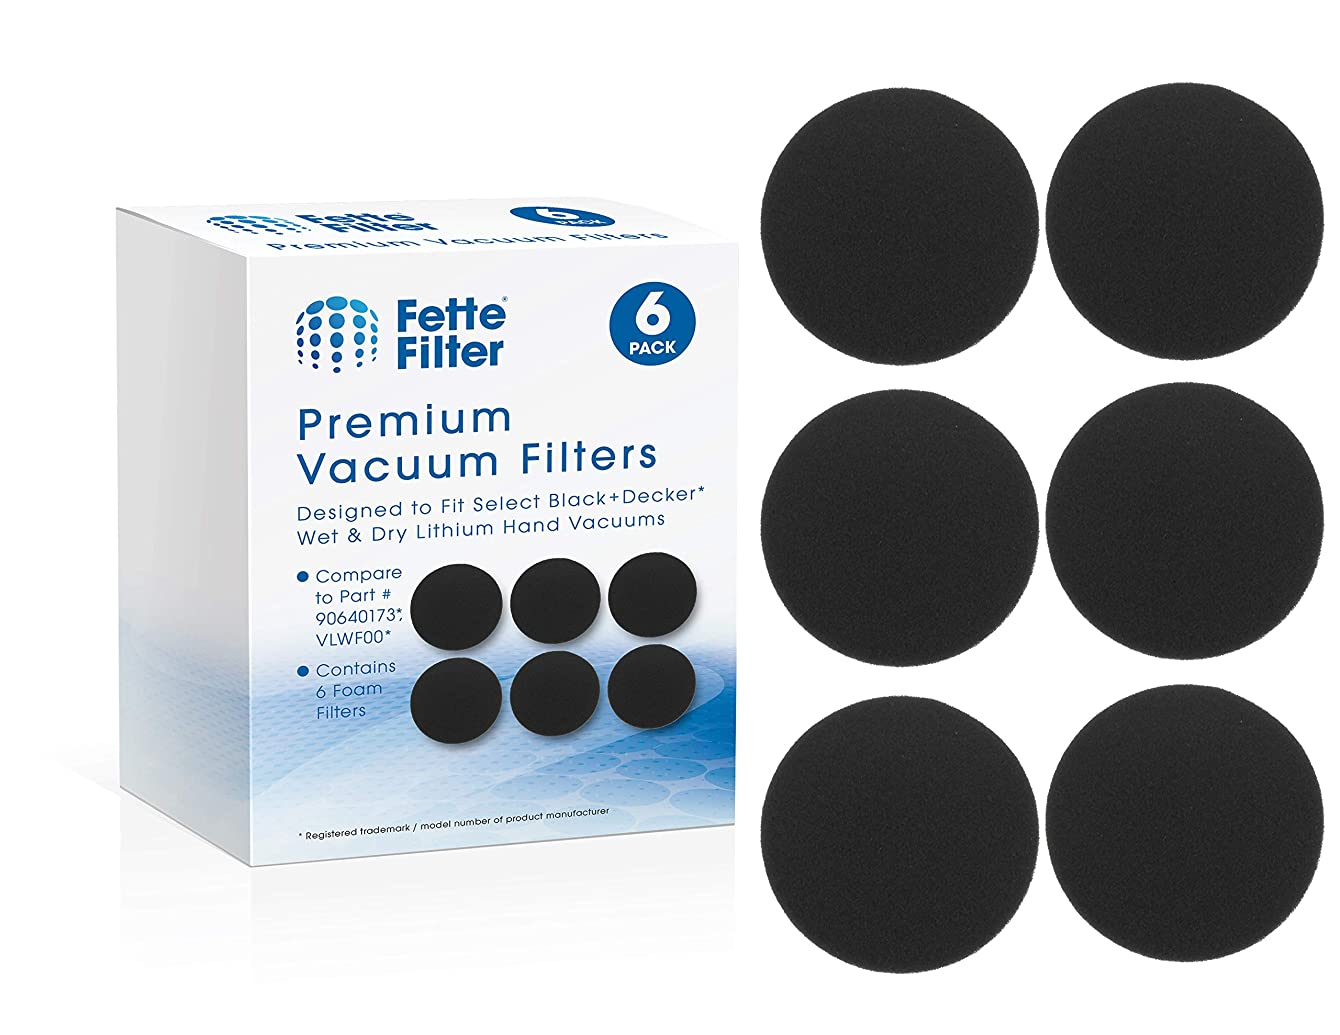 Fette Filter - Hand Vac Filter Compatible for Black + Decker VLWF00. Compatible with Dustbuster Hand Vacuum Wet/Dry Vacuum HLWVA325J21. Compare to # 90640173. Pack of 6